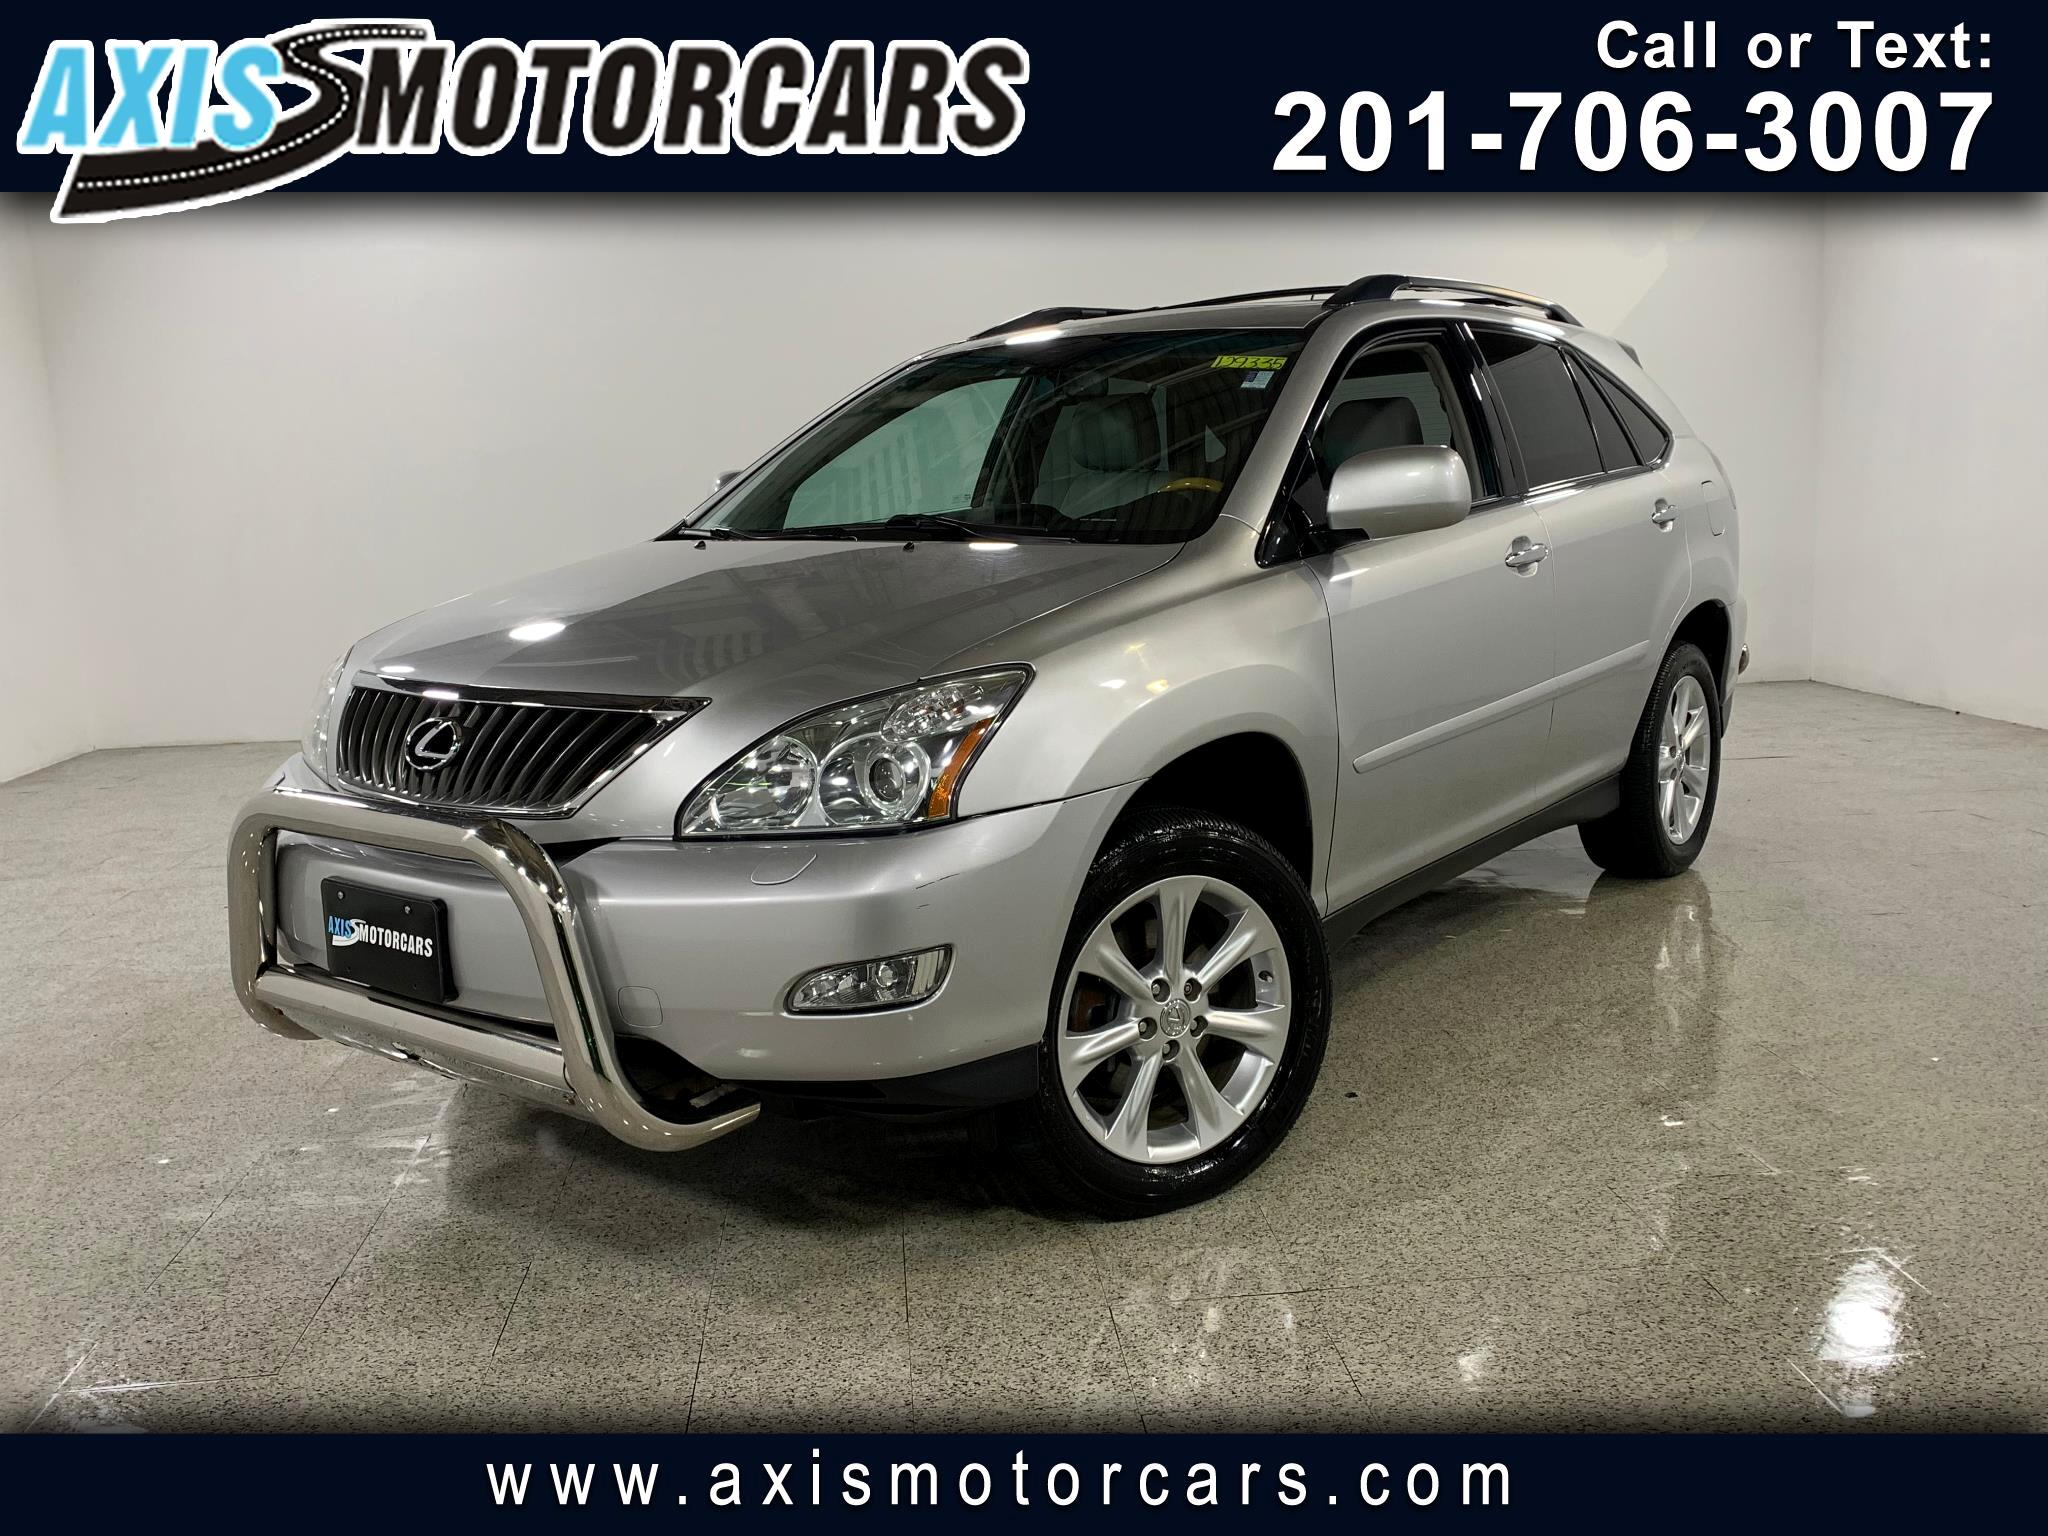 2009 Lexus RX 350 w/Sunroof Navigation Bakup Camera